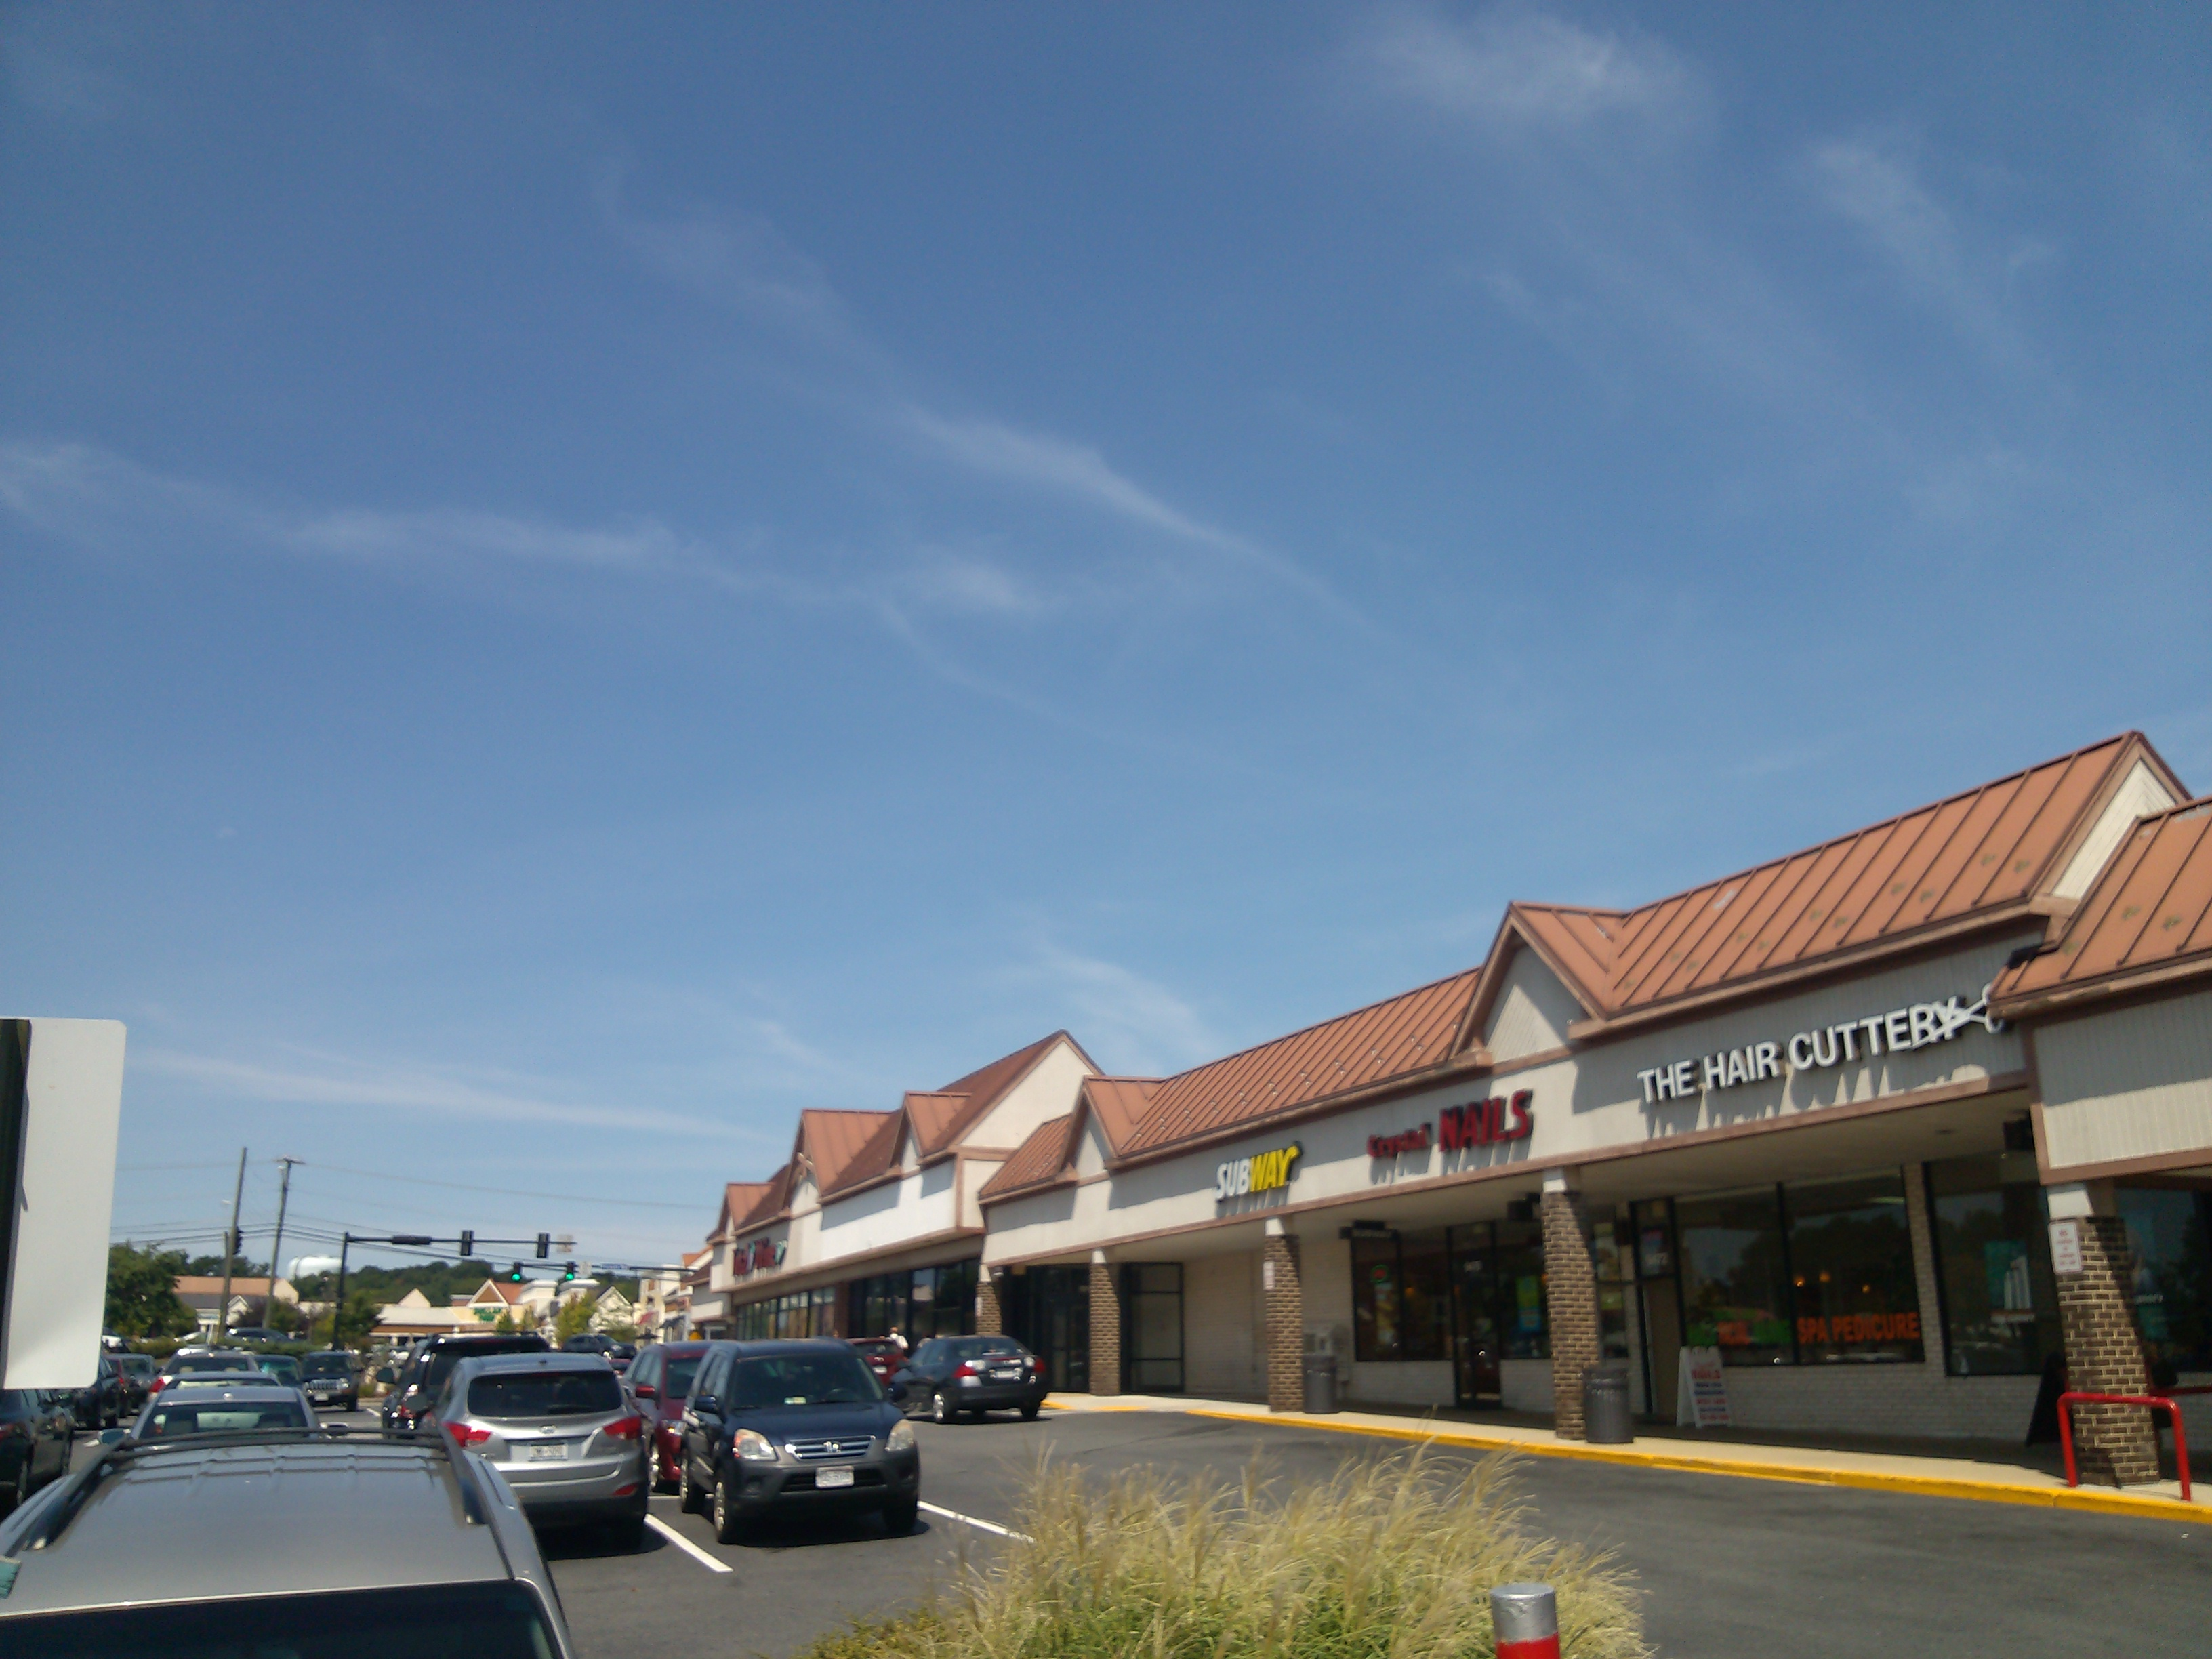 This shopping center is after NOVA Annandale Campus and before the Court House